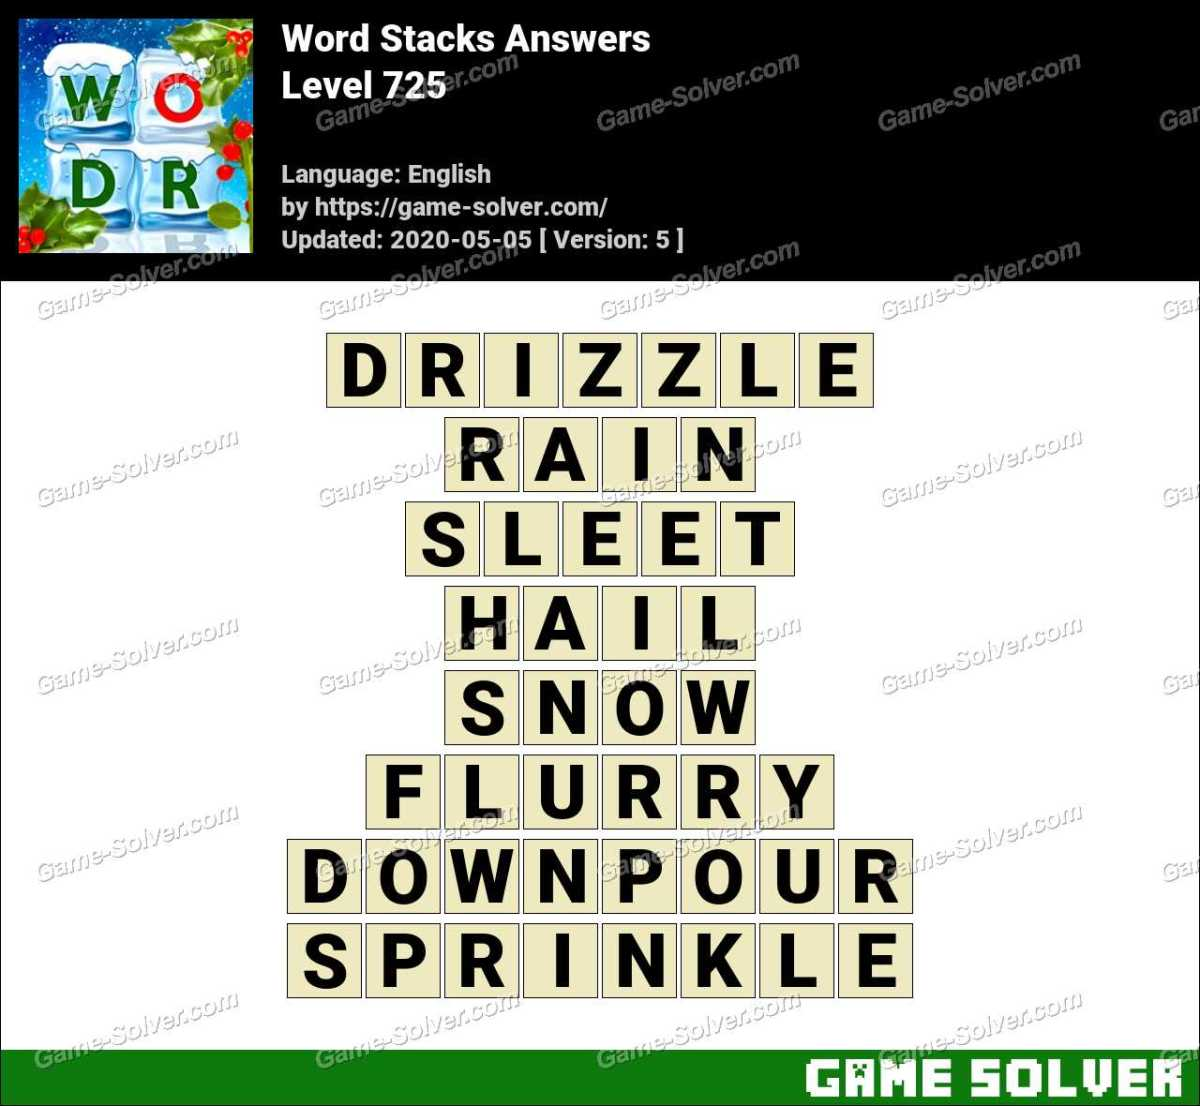 Word Stacks Level 725 Answers